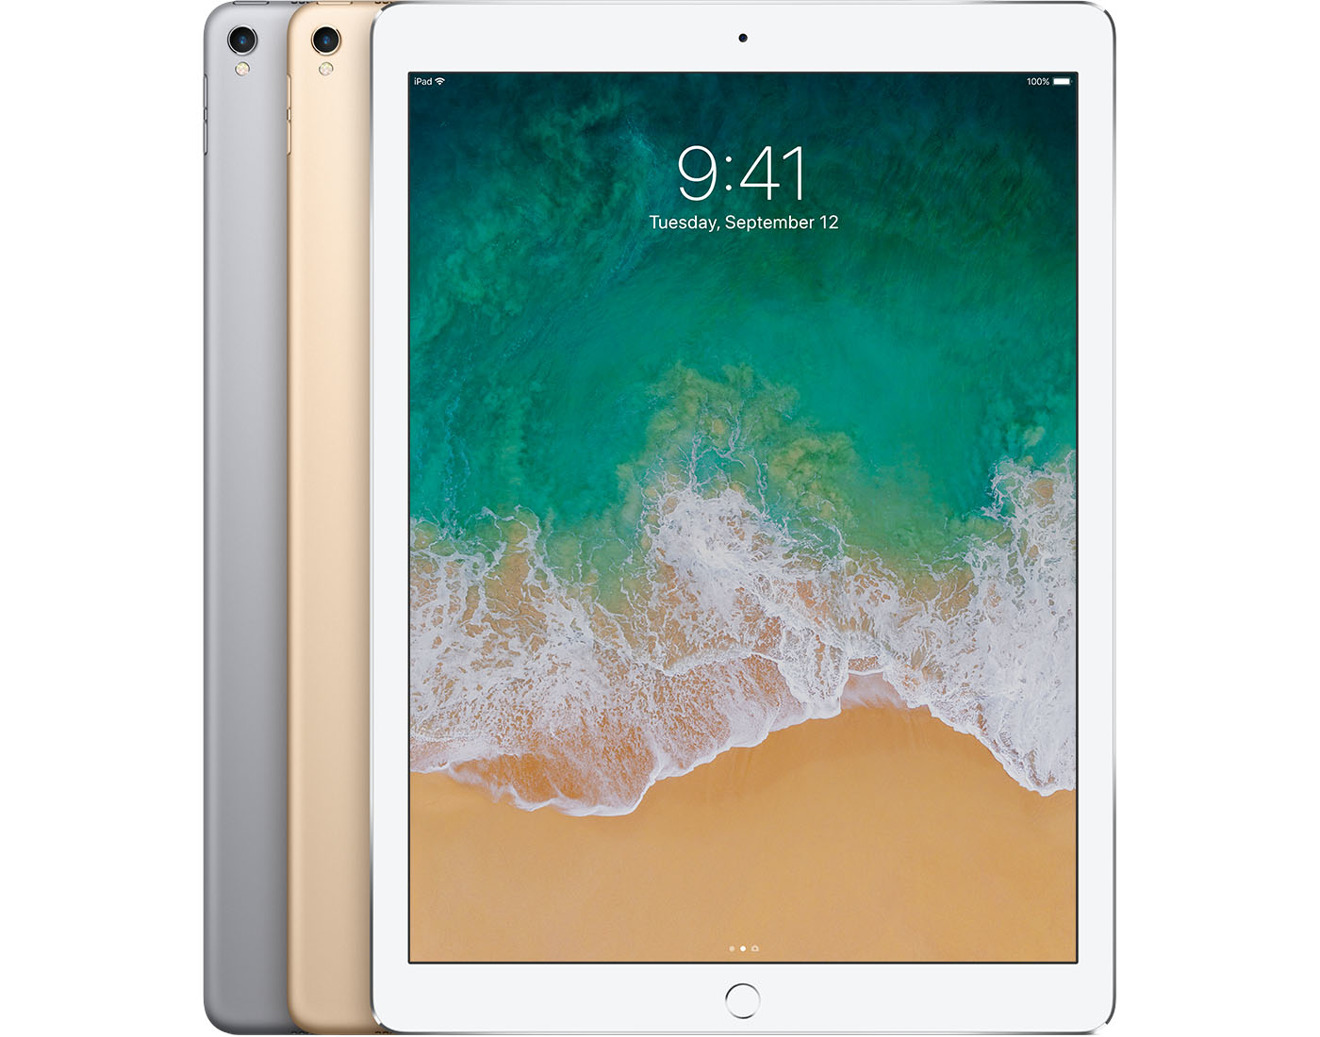 Apple iPad Pro in Silver Space Gray and Gold